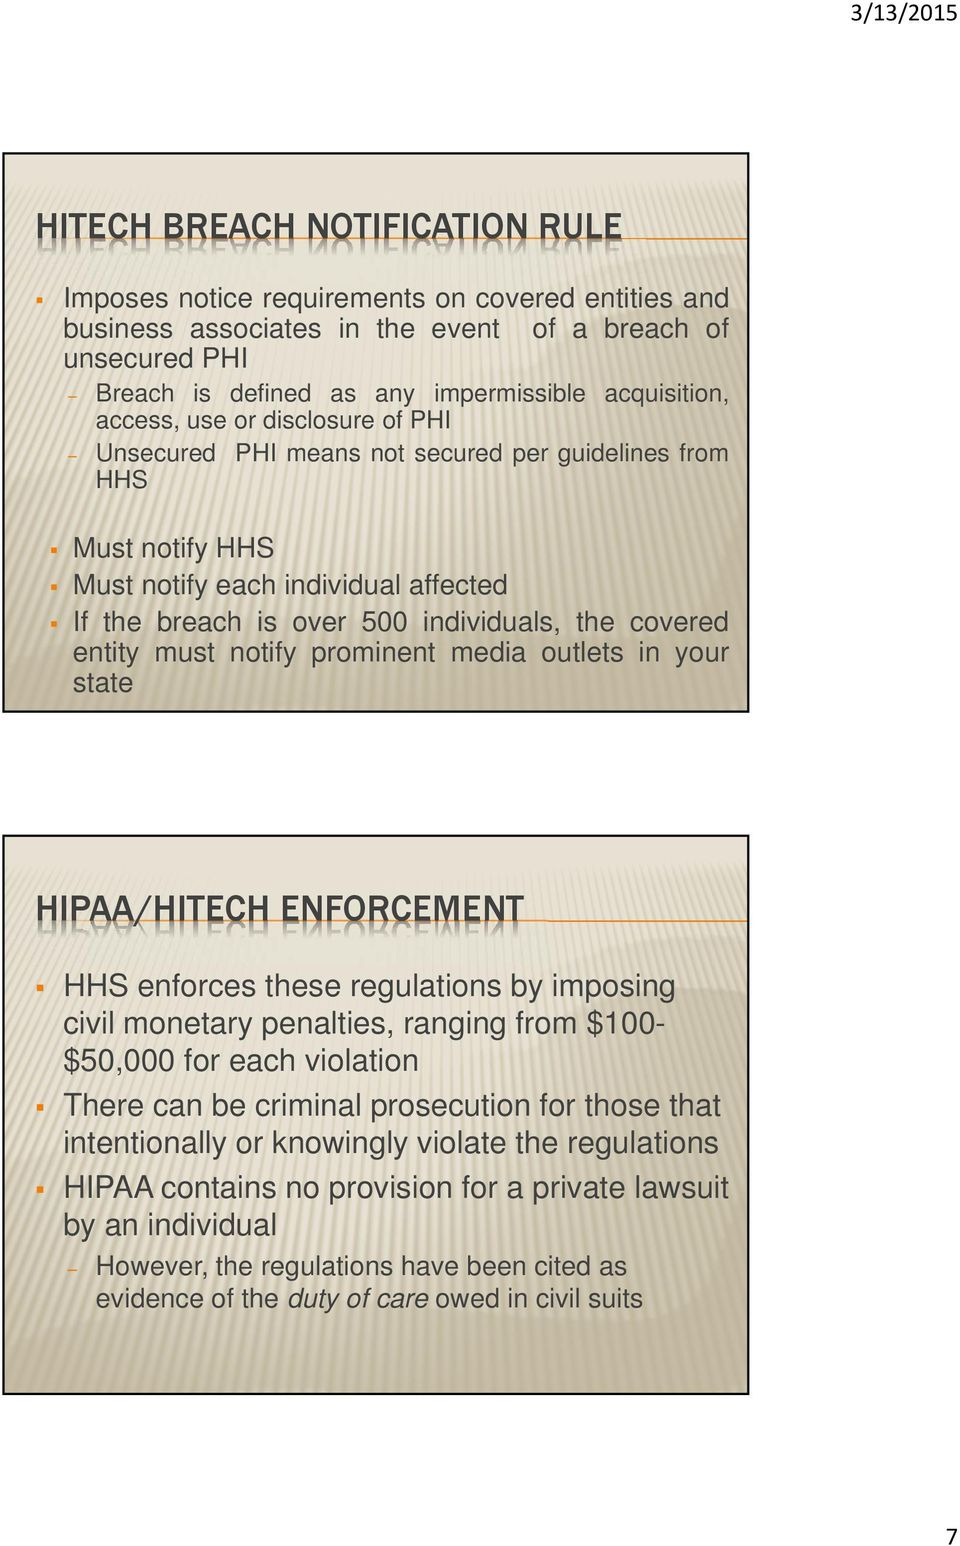 must notify prominent media outlets in your state HIPAA/HITECH ENFORCEMENT HHS enforces these regulations by imposing civil monetary penalties, ranging from $100- $50,000 for each violation There can